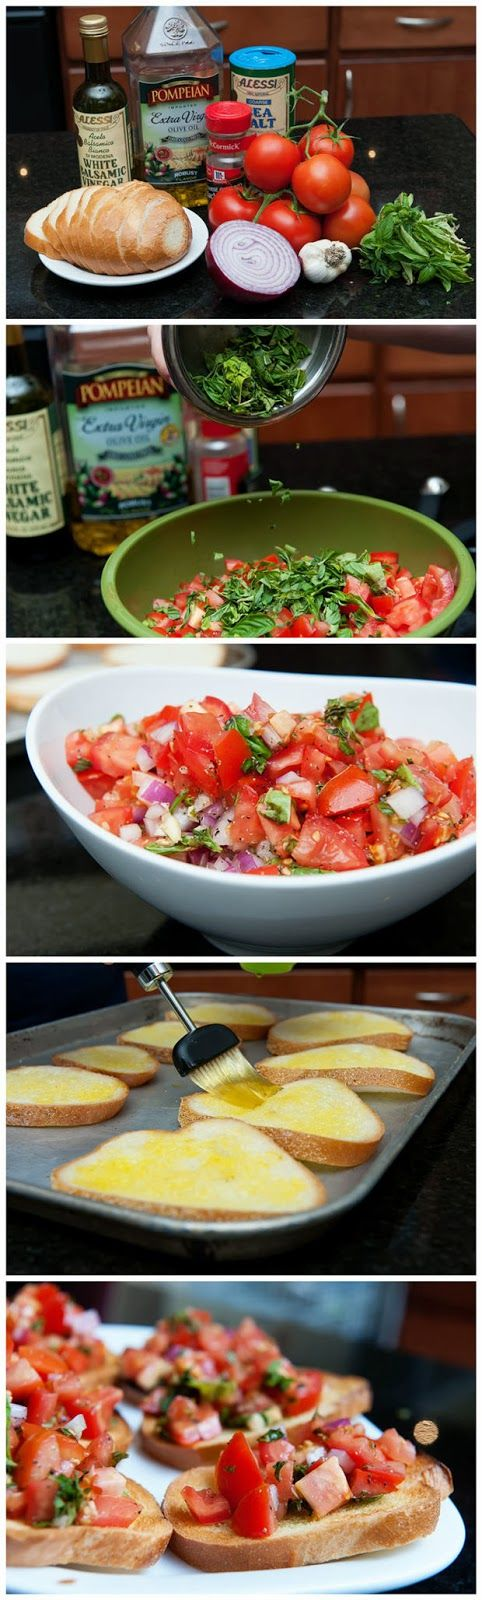 "Ah, the bounty of summer. Italian bruschetta (pronounced ""brusketta"") is a wonderful way to capture the flavors of ripe summer tomatoes, fre..."